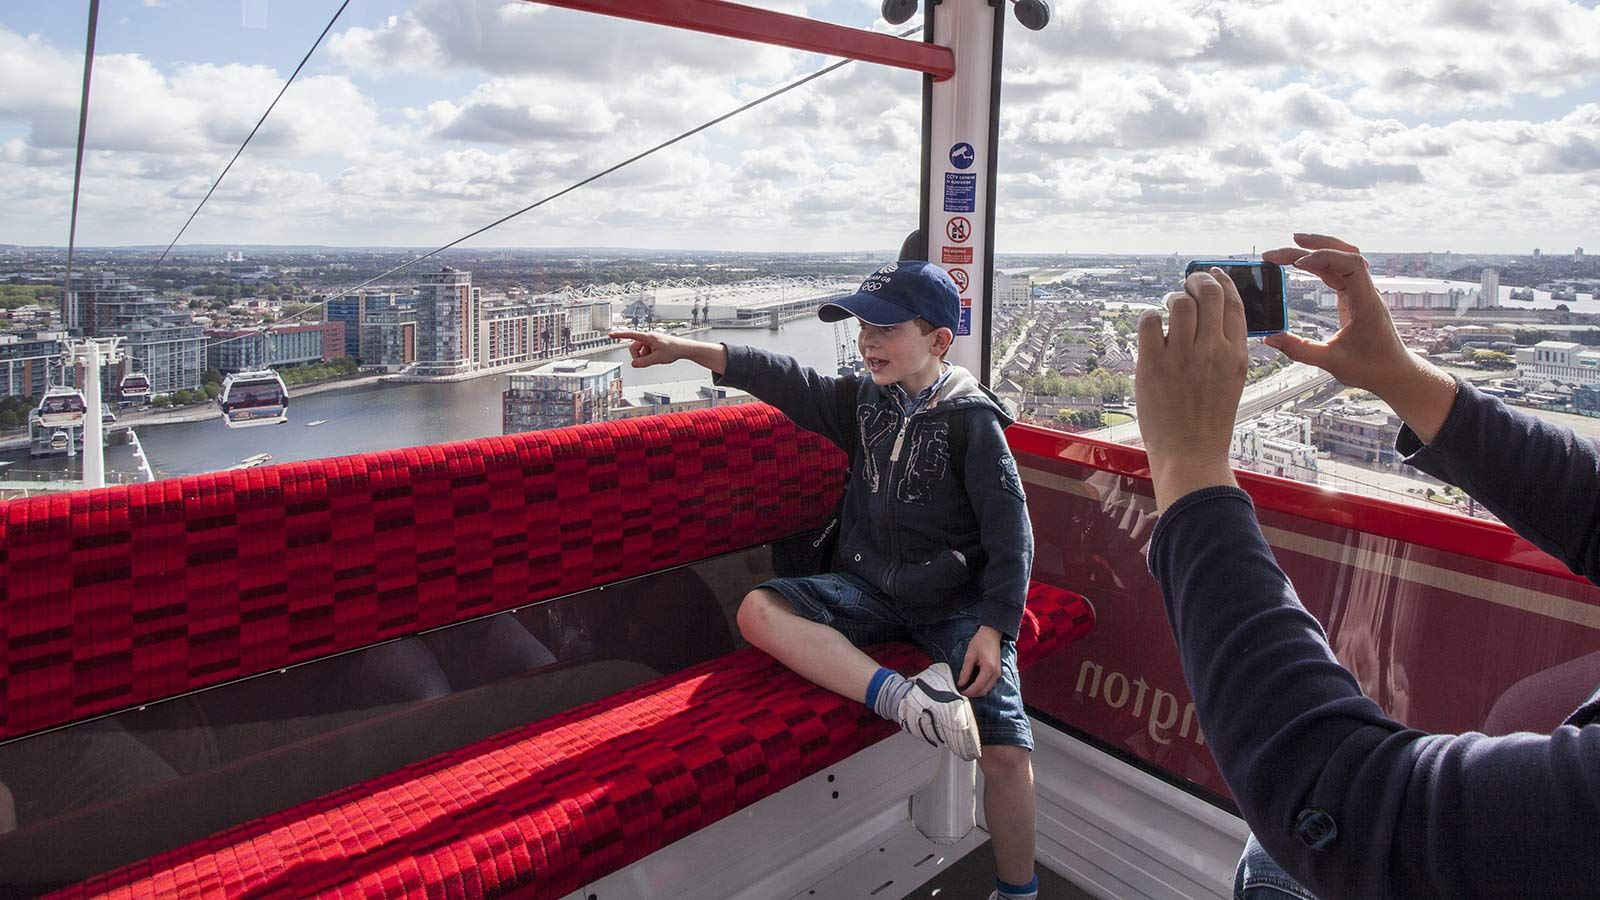 Child Pointing, Inside Emirates Airline Cable Car - Mace Group